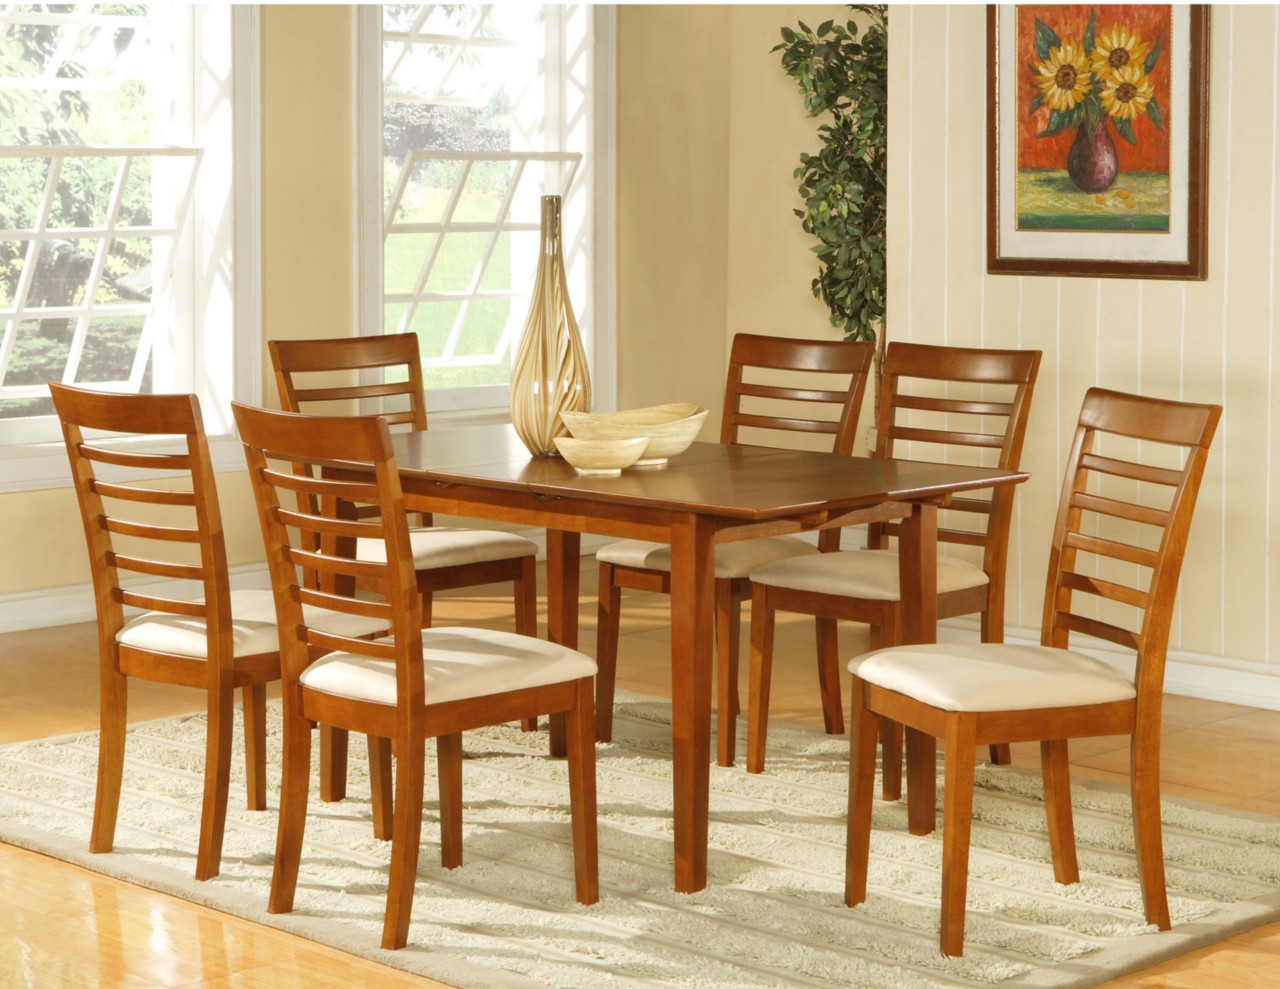 6 chair dining set swing newborn 7pc room dinette table and chairs brown ebay